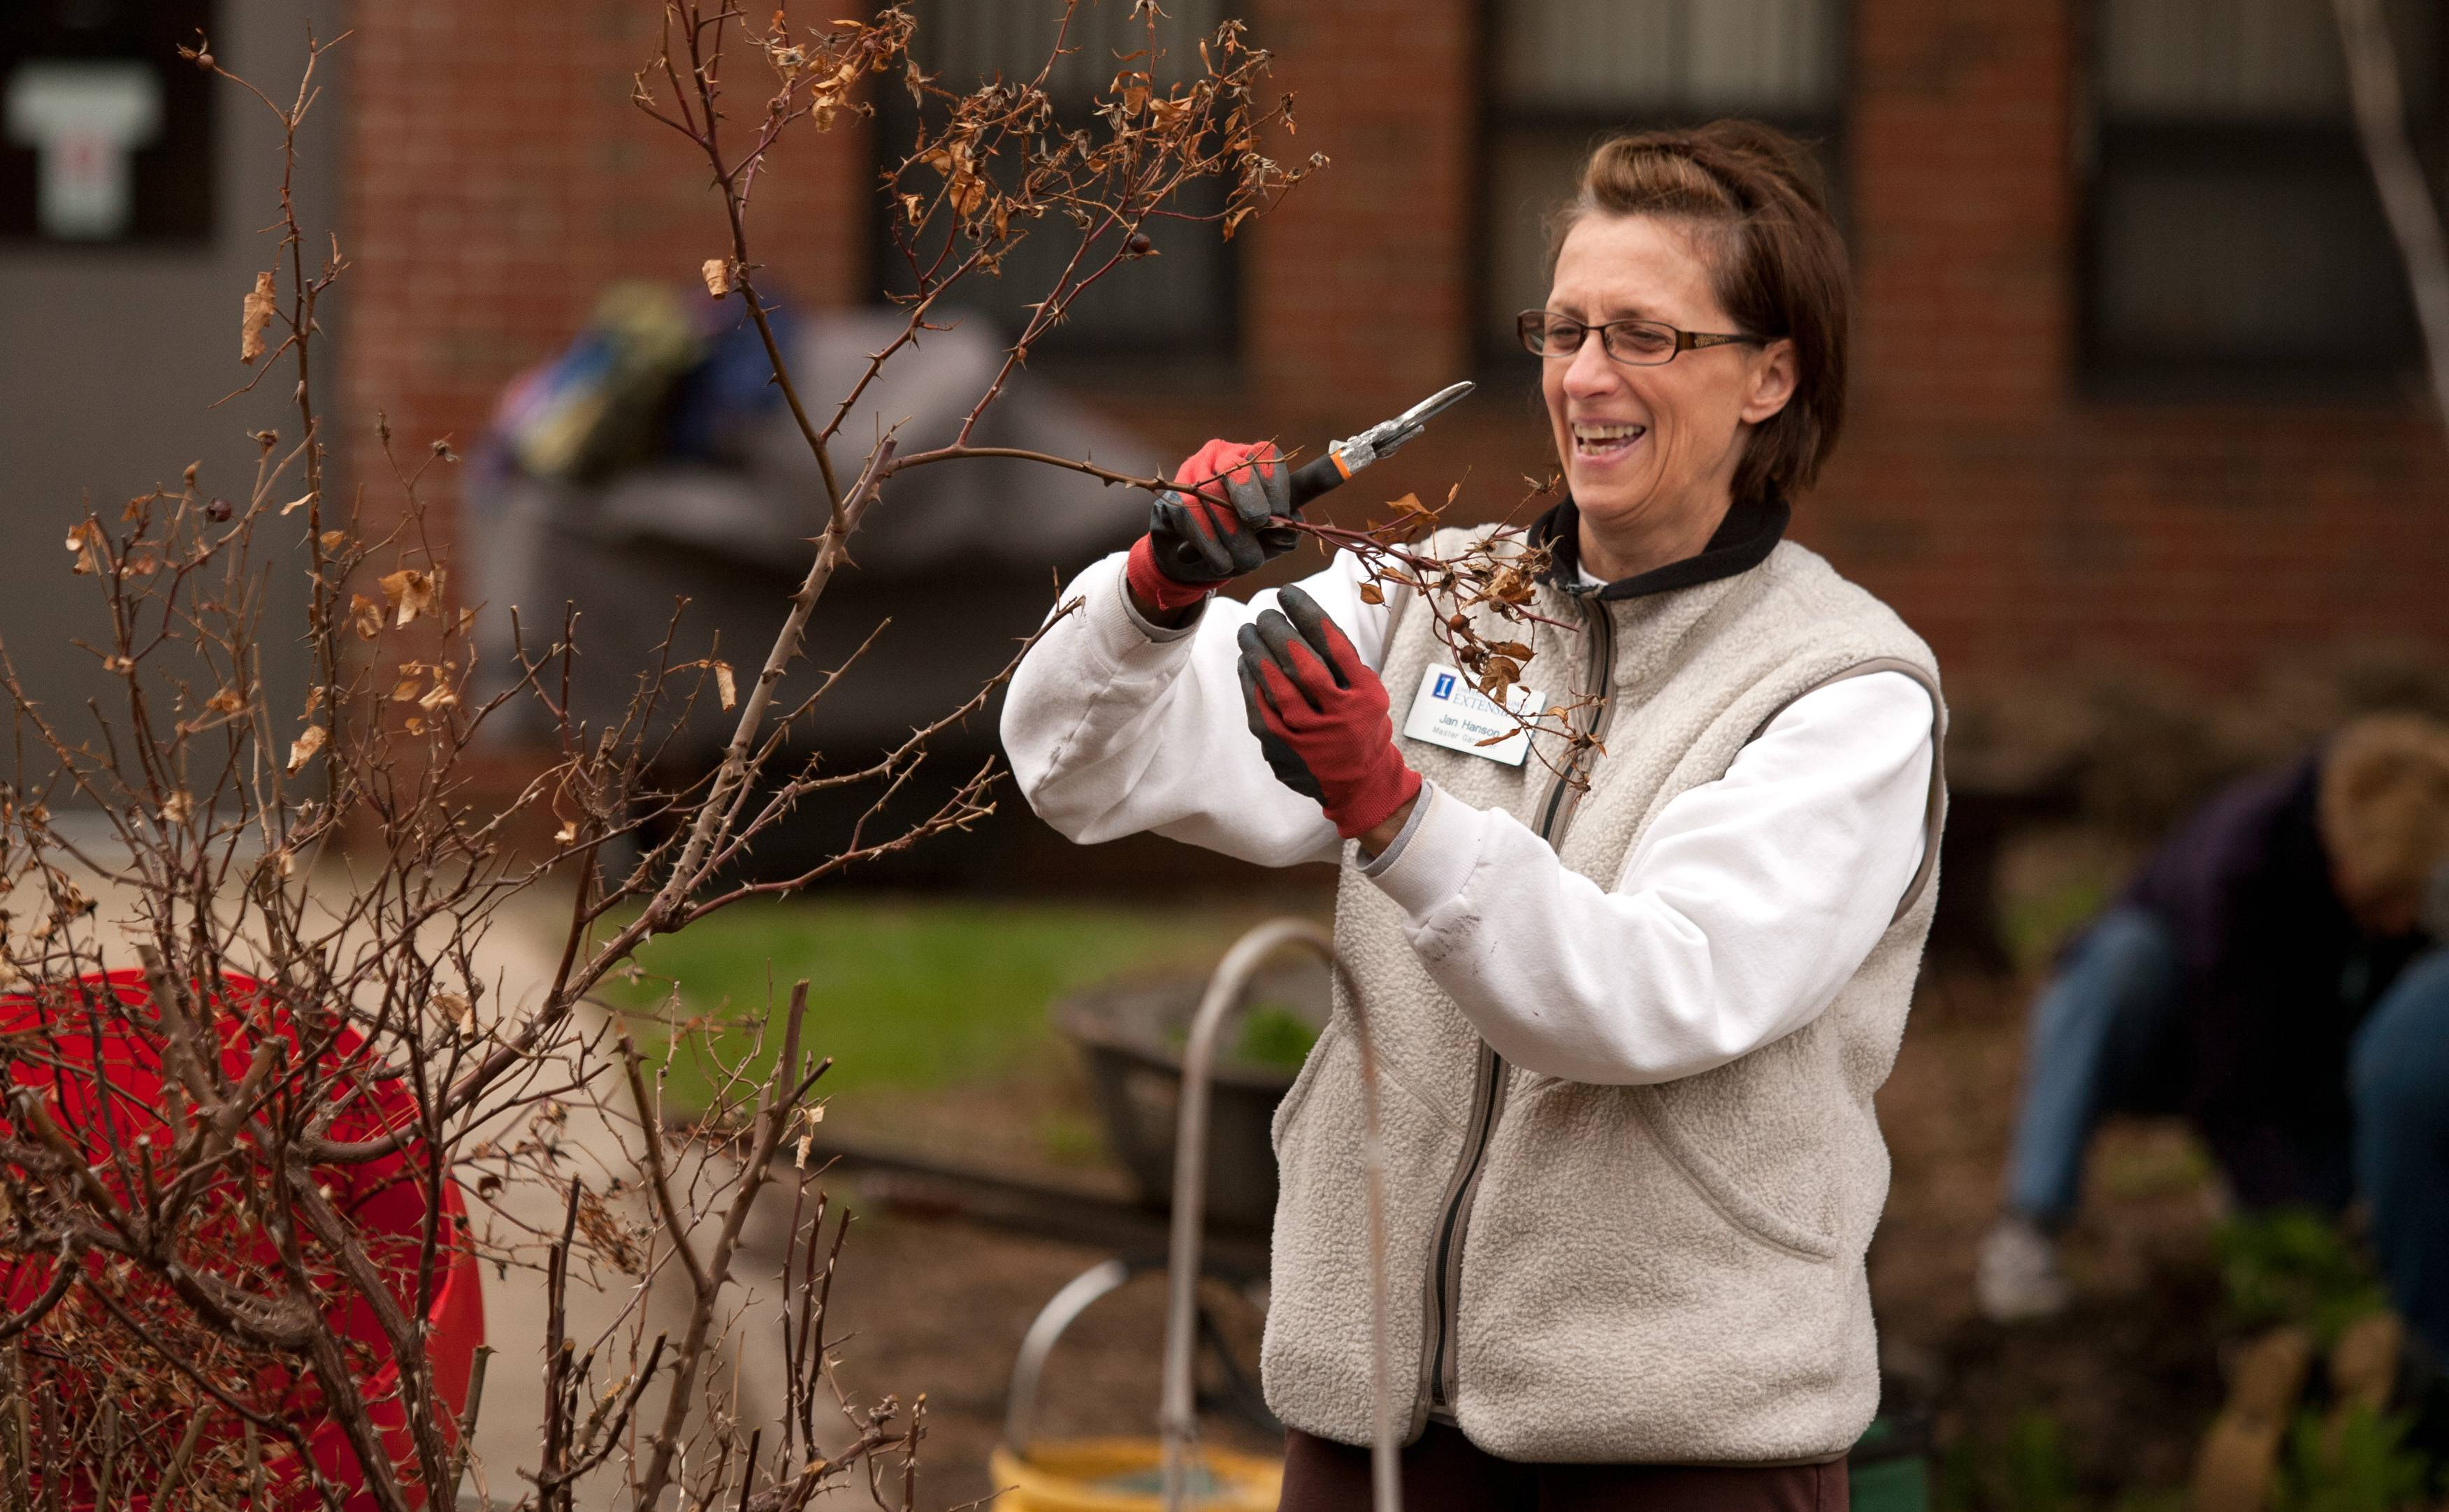 Jan Hanson, of Bartlett, along with other University of Illinois Master Gardeners, prepares garden beds at the DuPage Convalescent Center. She is pruning Knock Out roses.